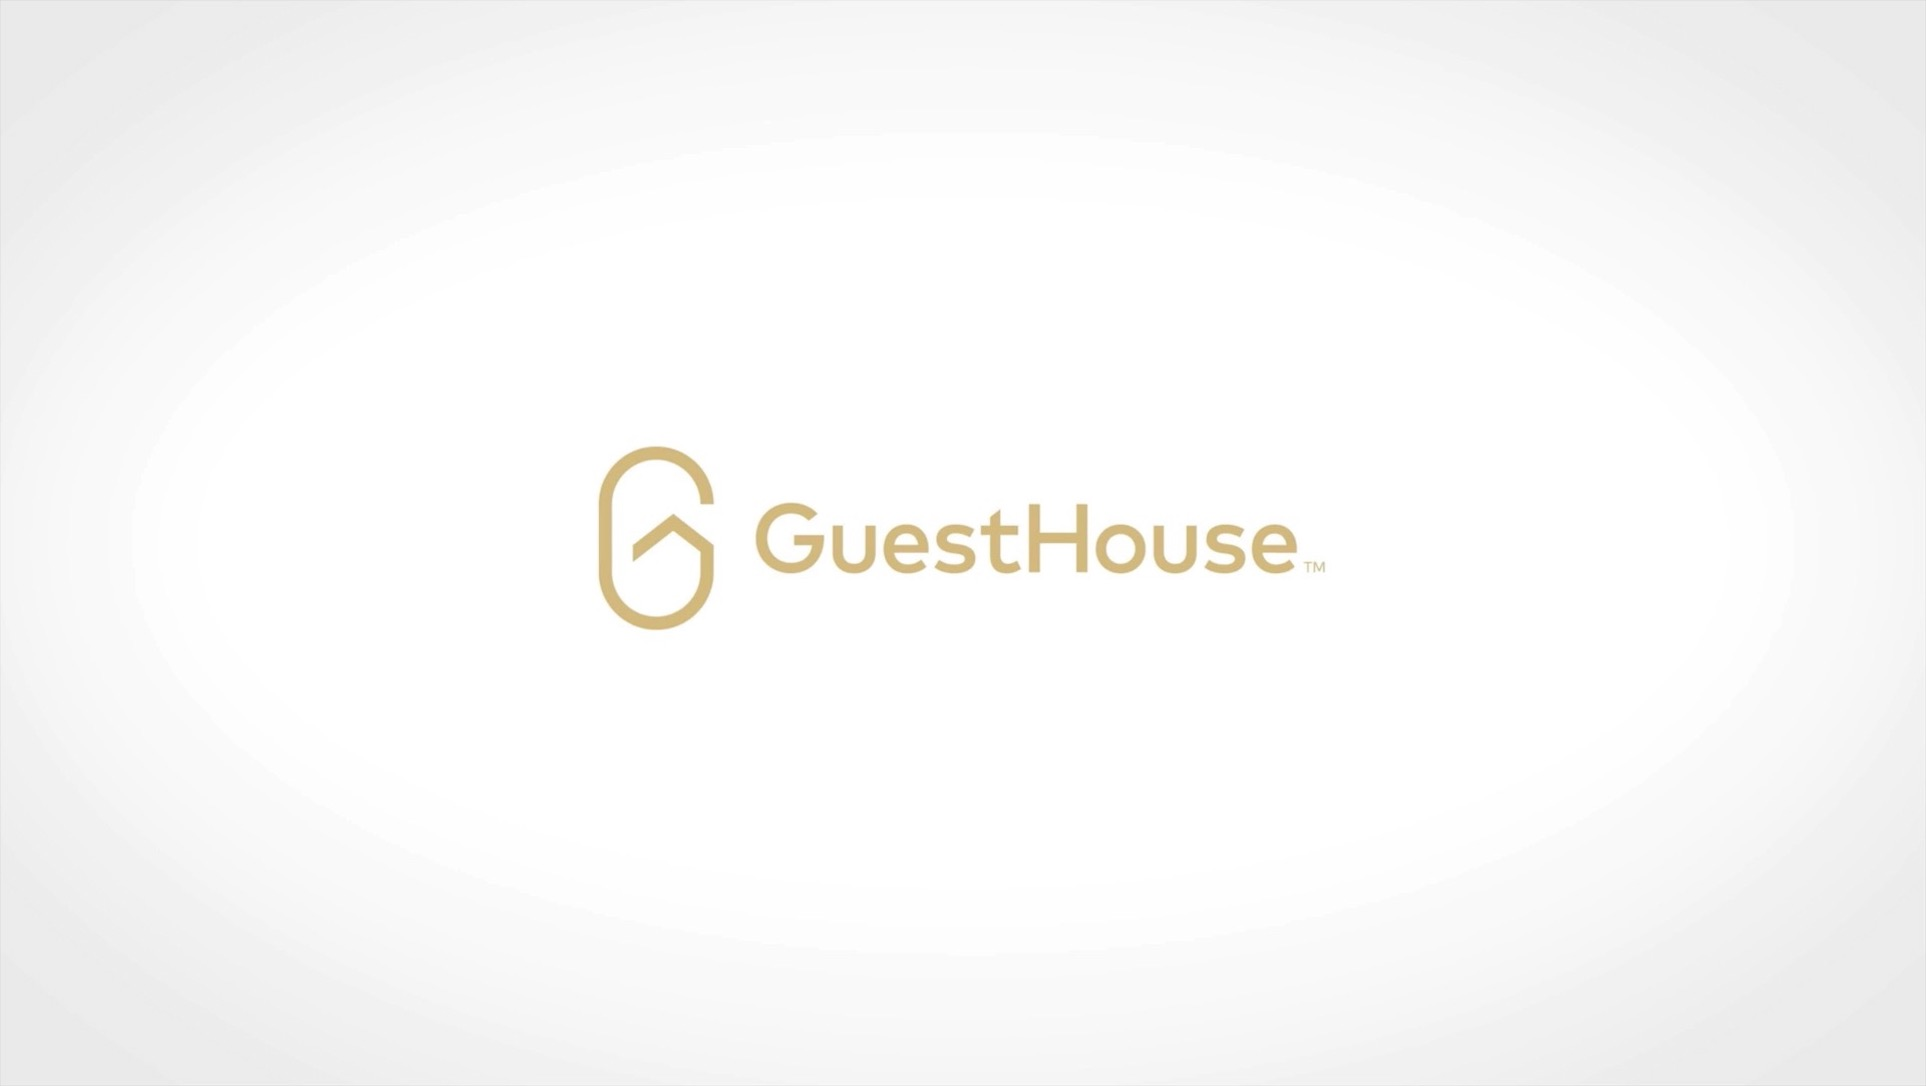 Guest House Promo – Guest House Corp